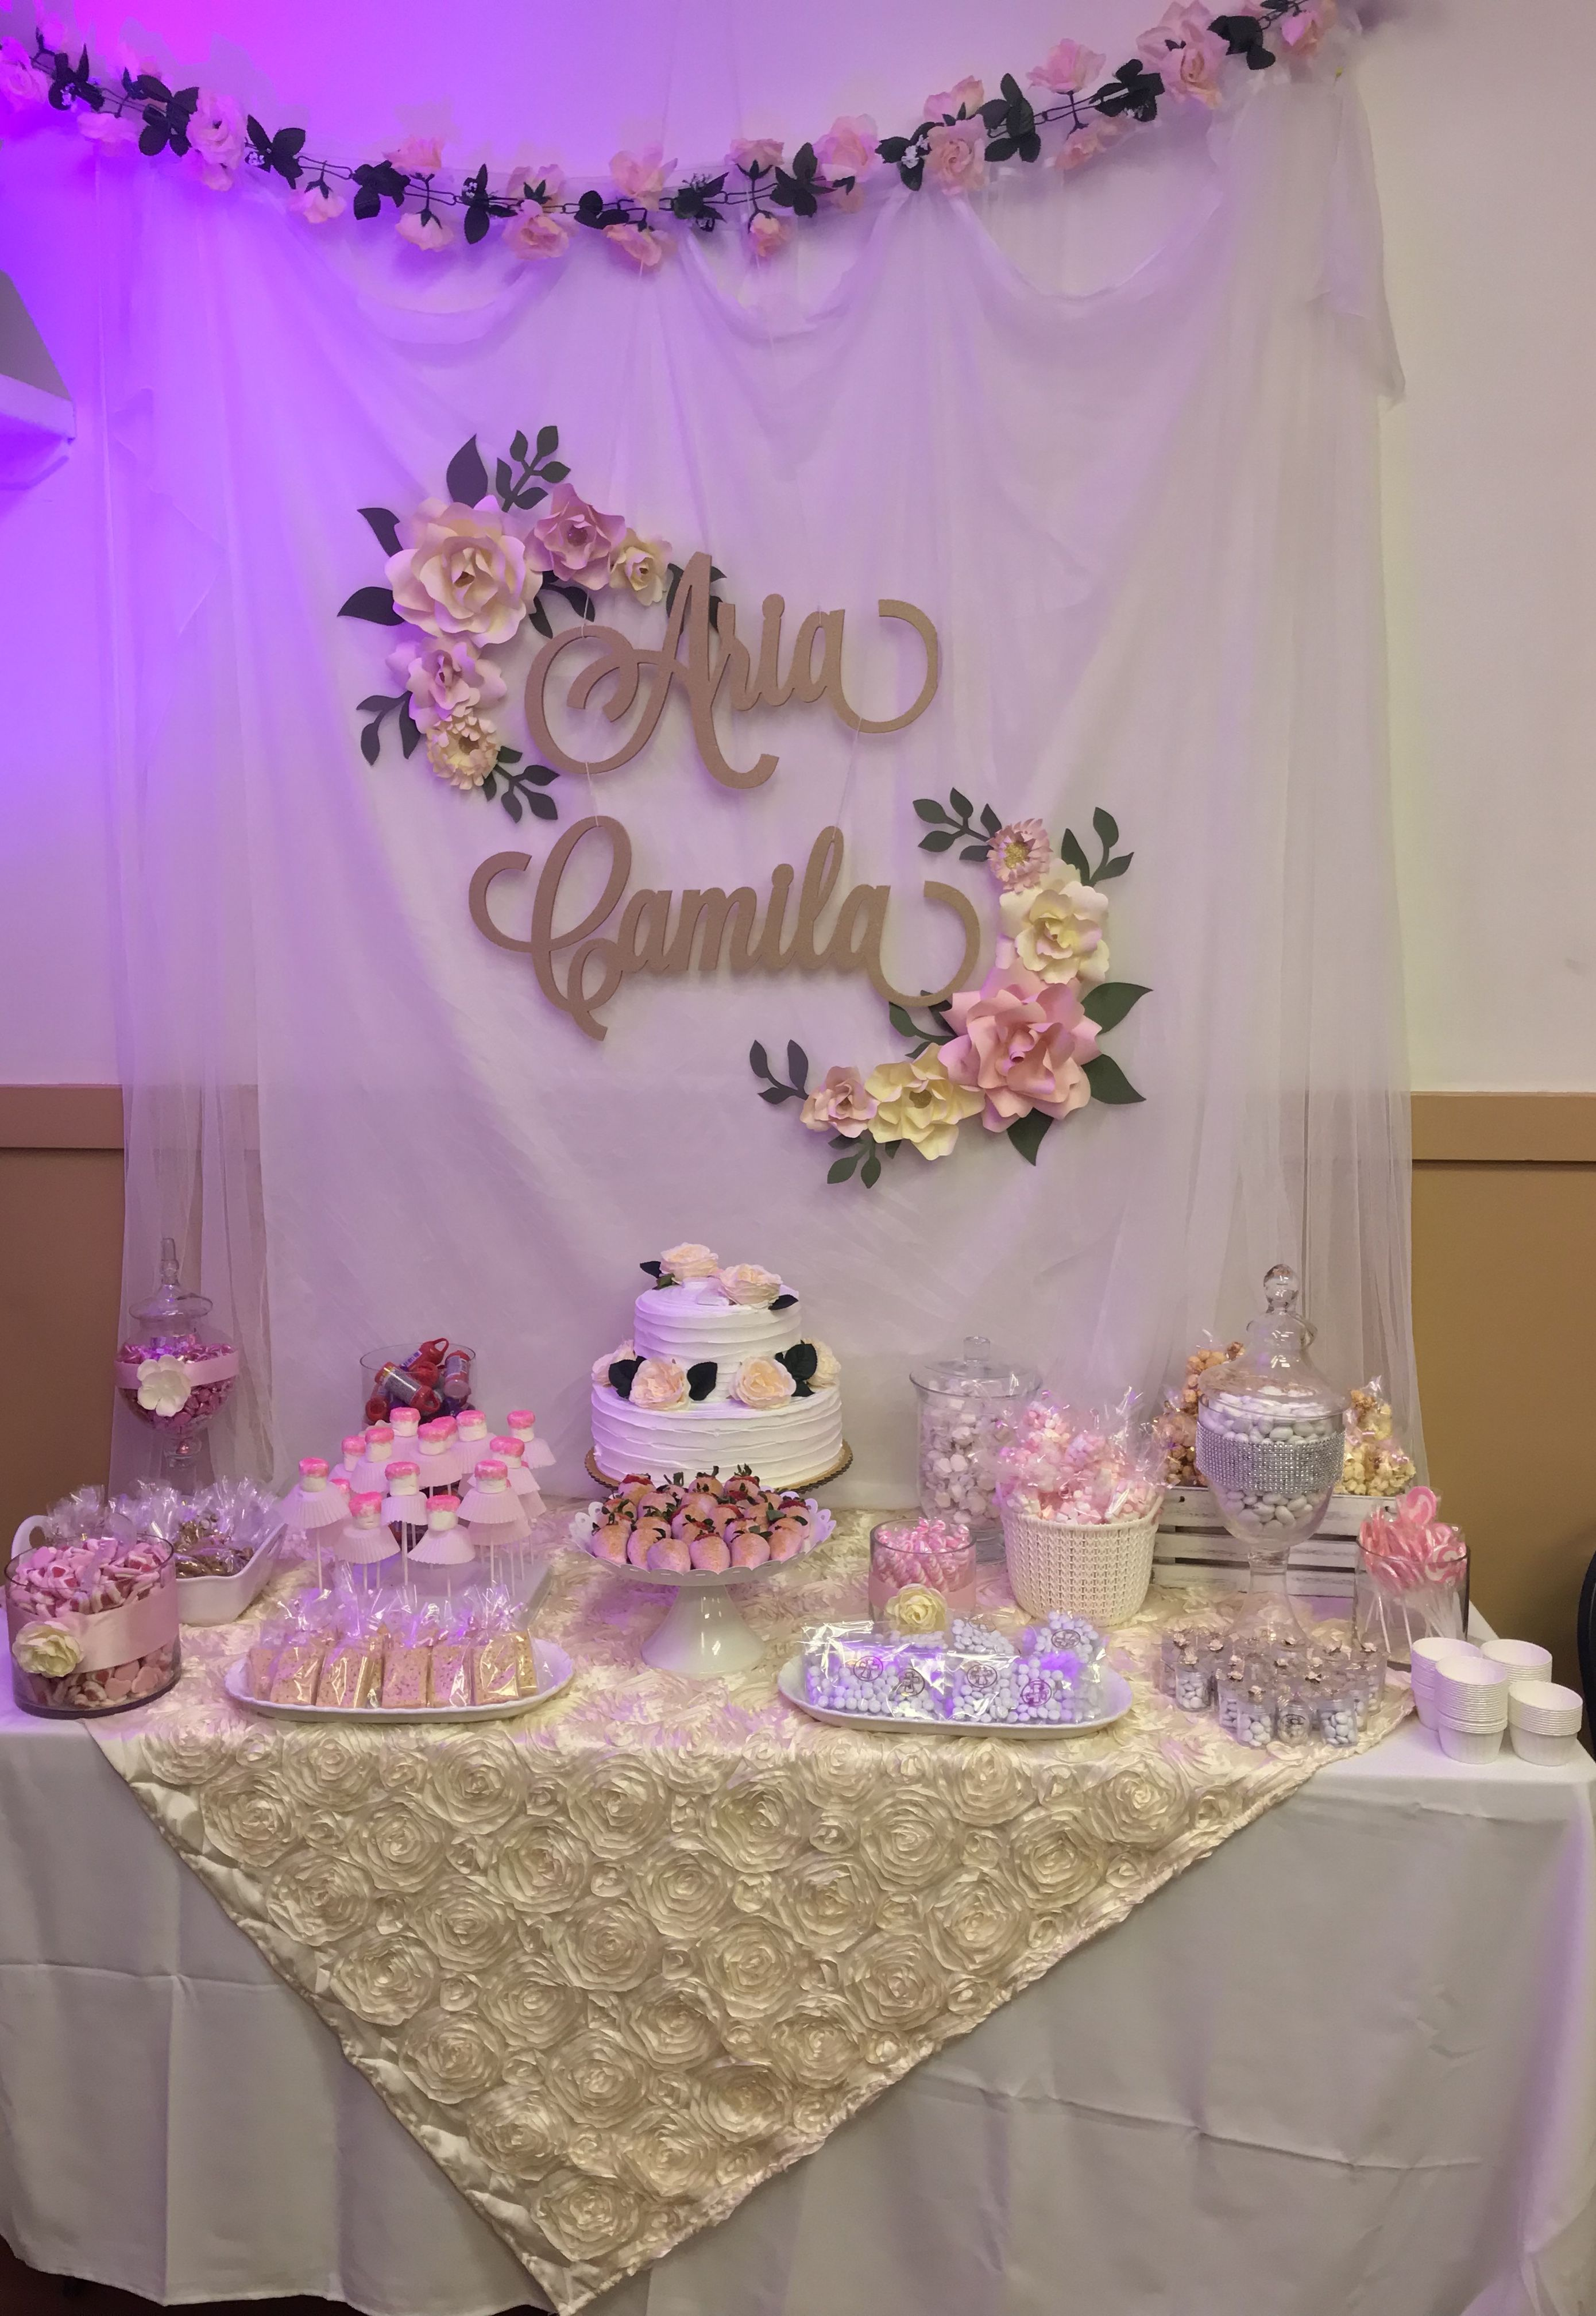 Manteles Para Mesas Dulces Baptism Candy Table Manteles First Communion Party